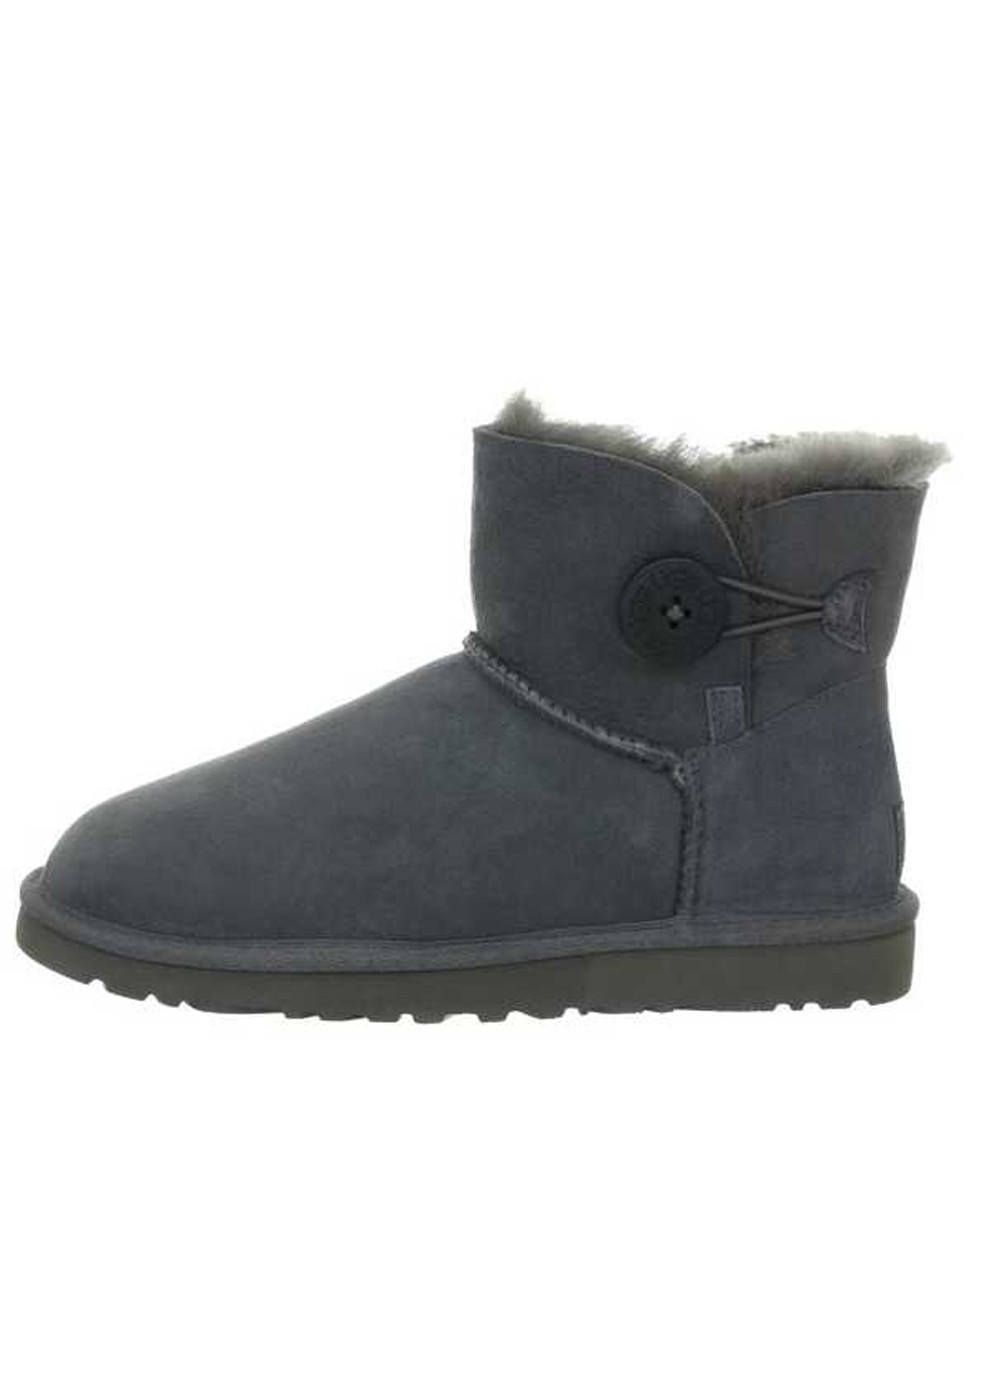 Mini Bailey Button II GREY|グレー|ブーツ|UGG (YS)|最大30%OFF